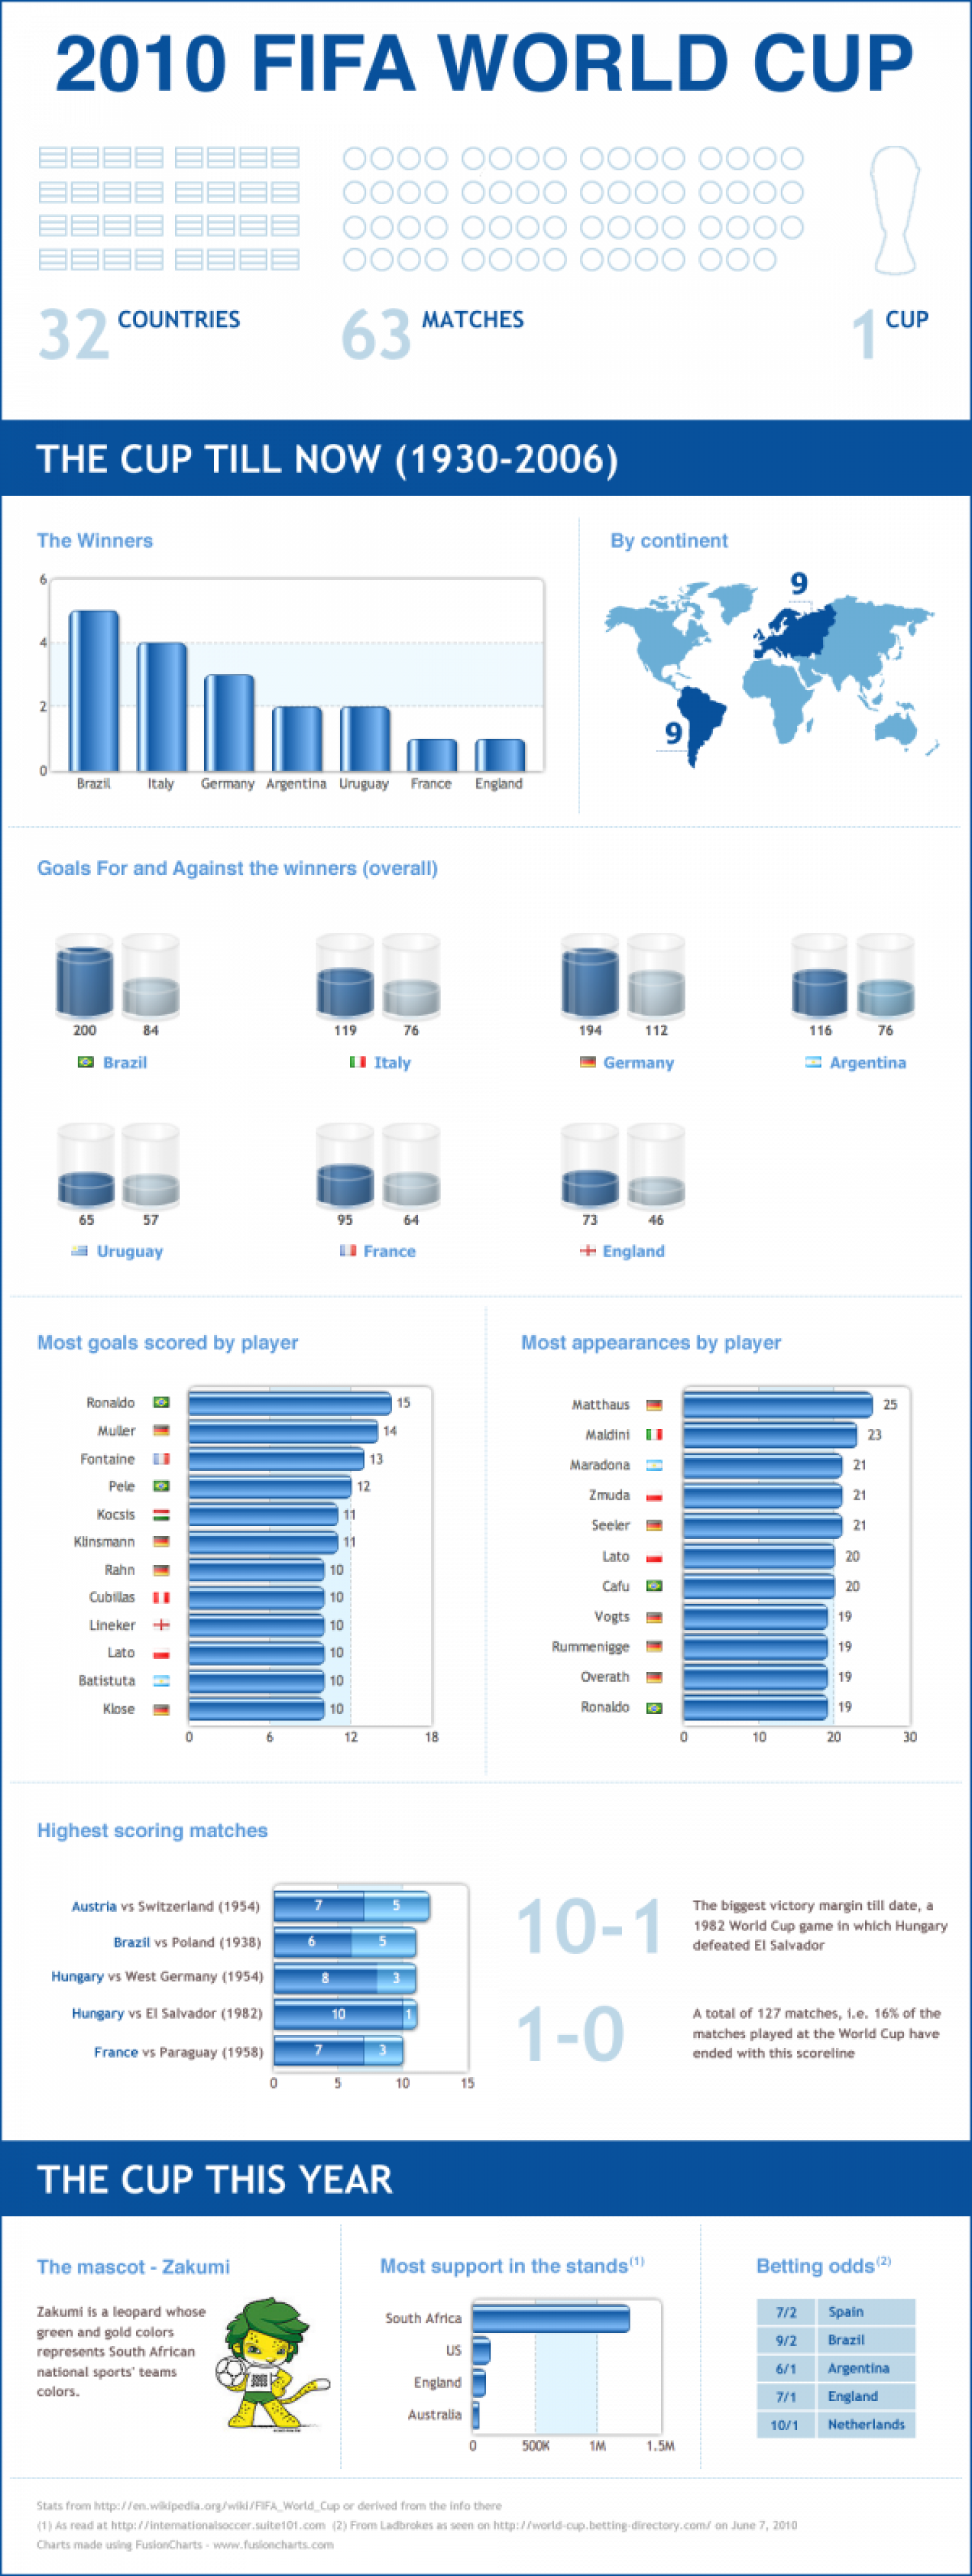 FIFA World Cup 2010 Infographic | Winners, Highest Scores, Betting Odds and more  Infographic